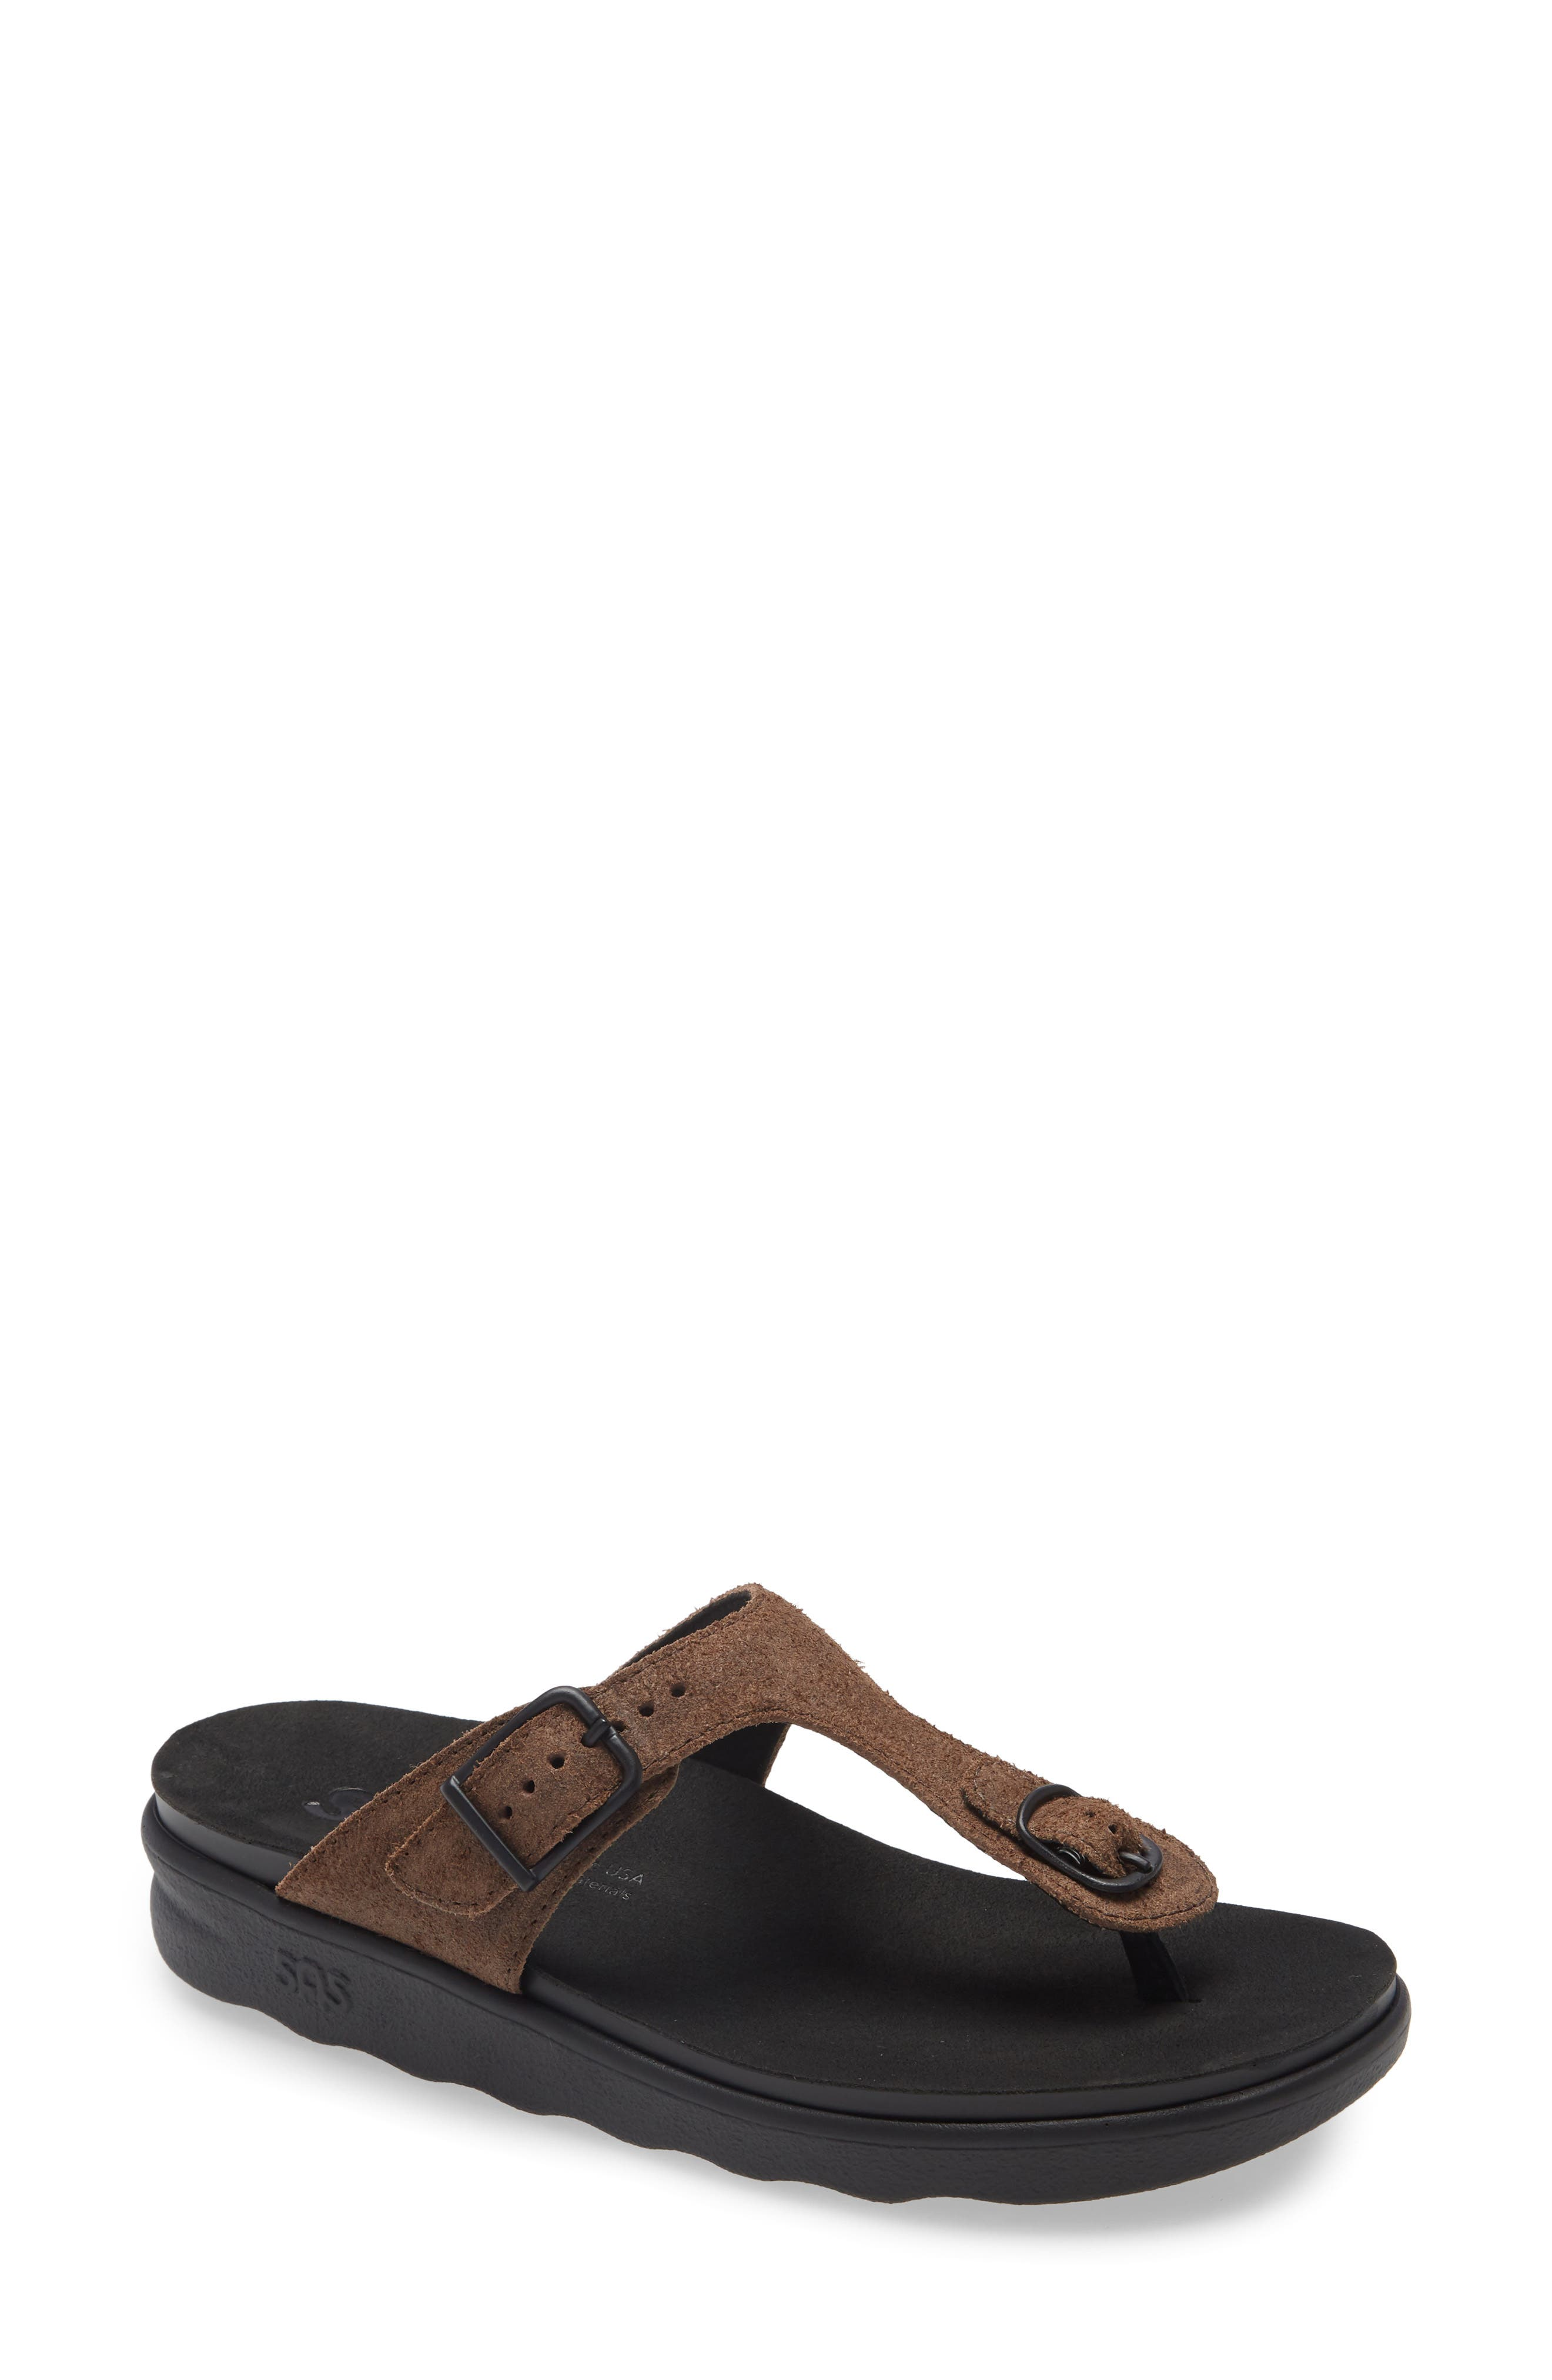 A cushioned, shock-absorbing footbed with pressure-point support provides all-day comfort for this laid-back sandal fitted with an adjustable strap. Style Name: Sas Sanibel Flip Flop (Women). Style Number: 6163131. Available in stores.